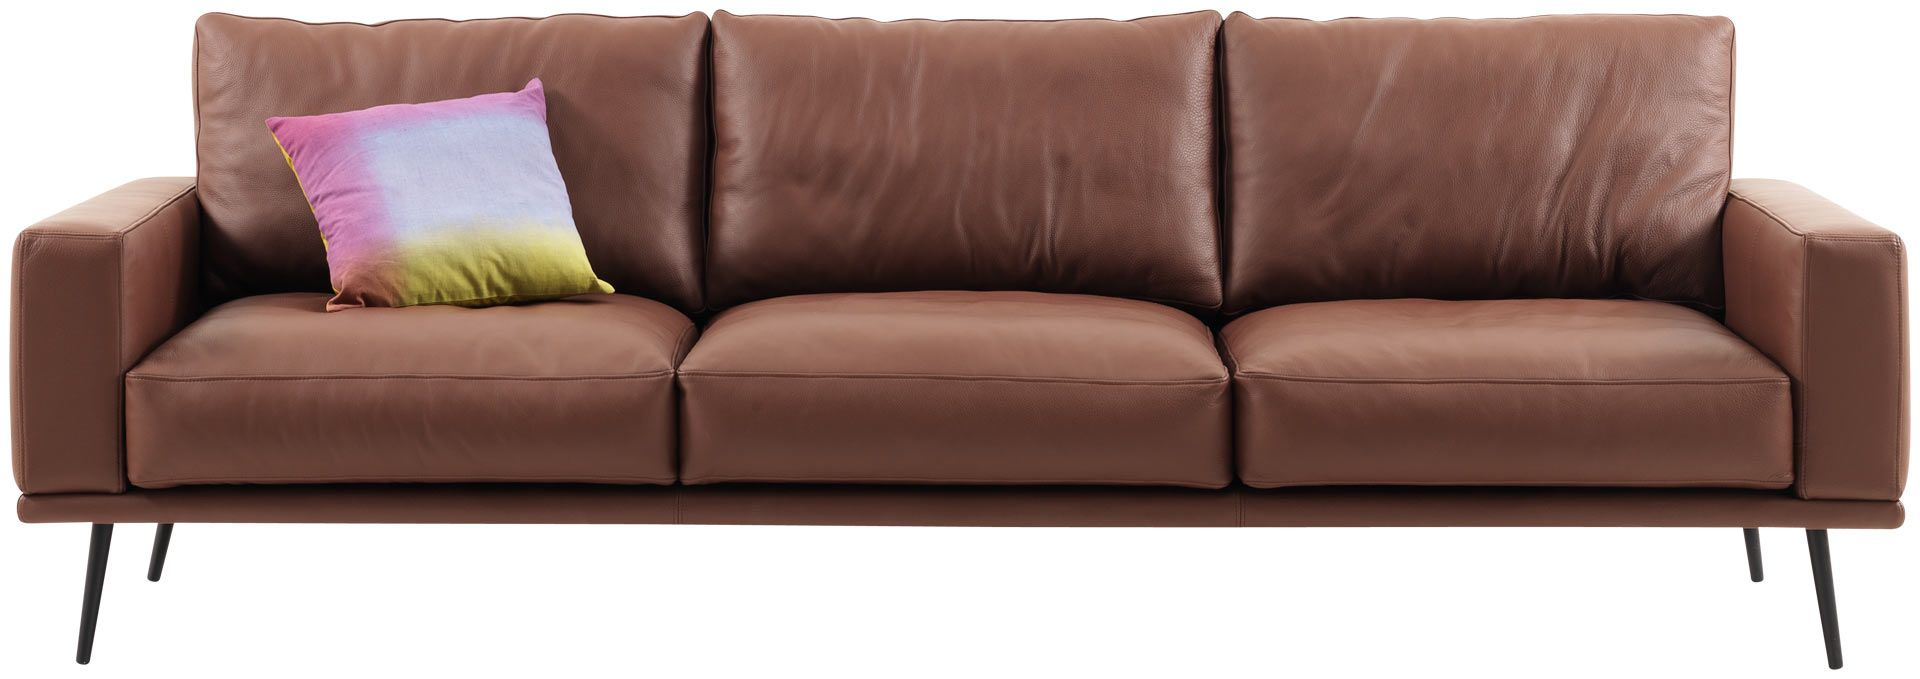 Modern 3 Seater Sofas Quality From Boconcept Office Pinterest Boconcept And Modern